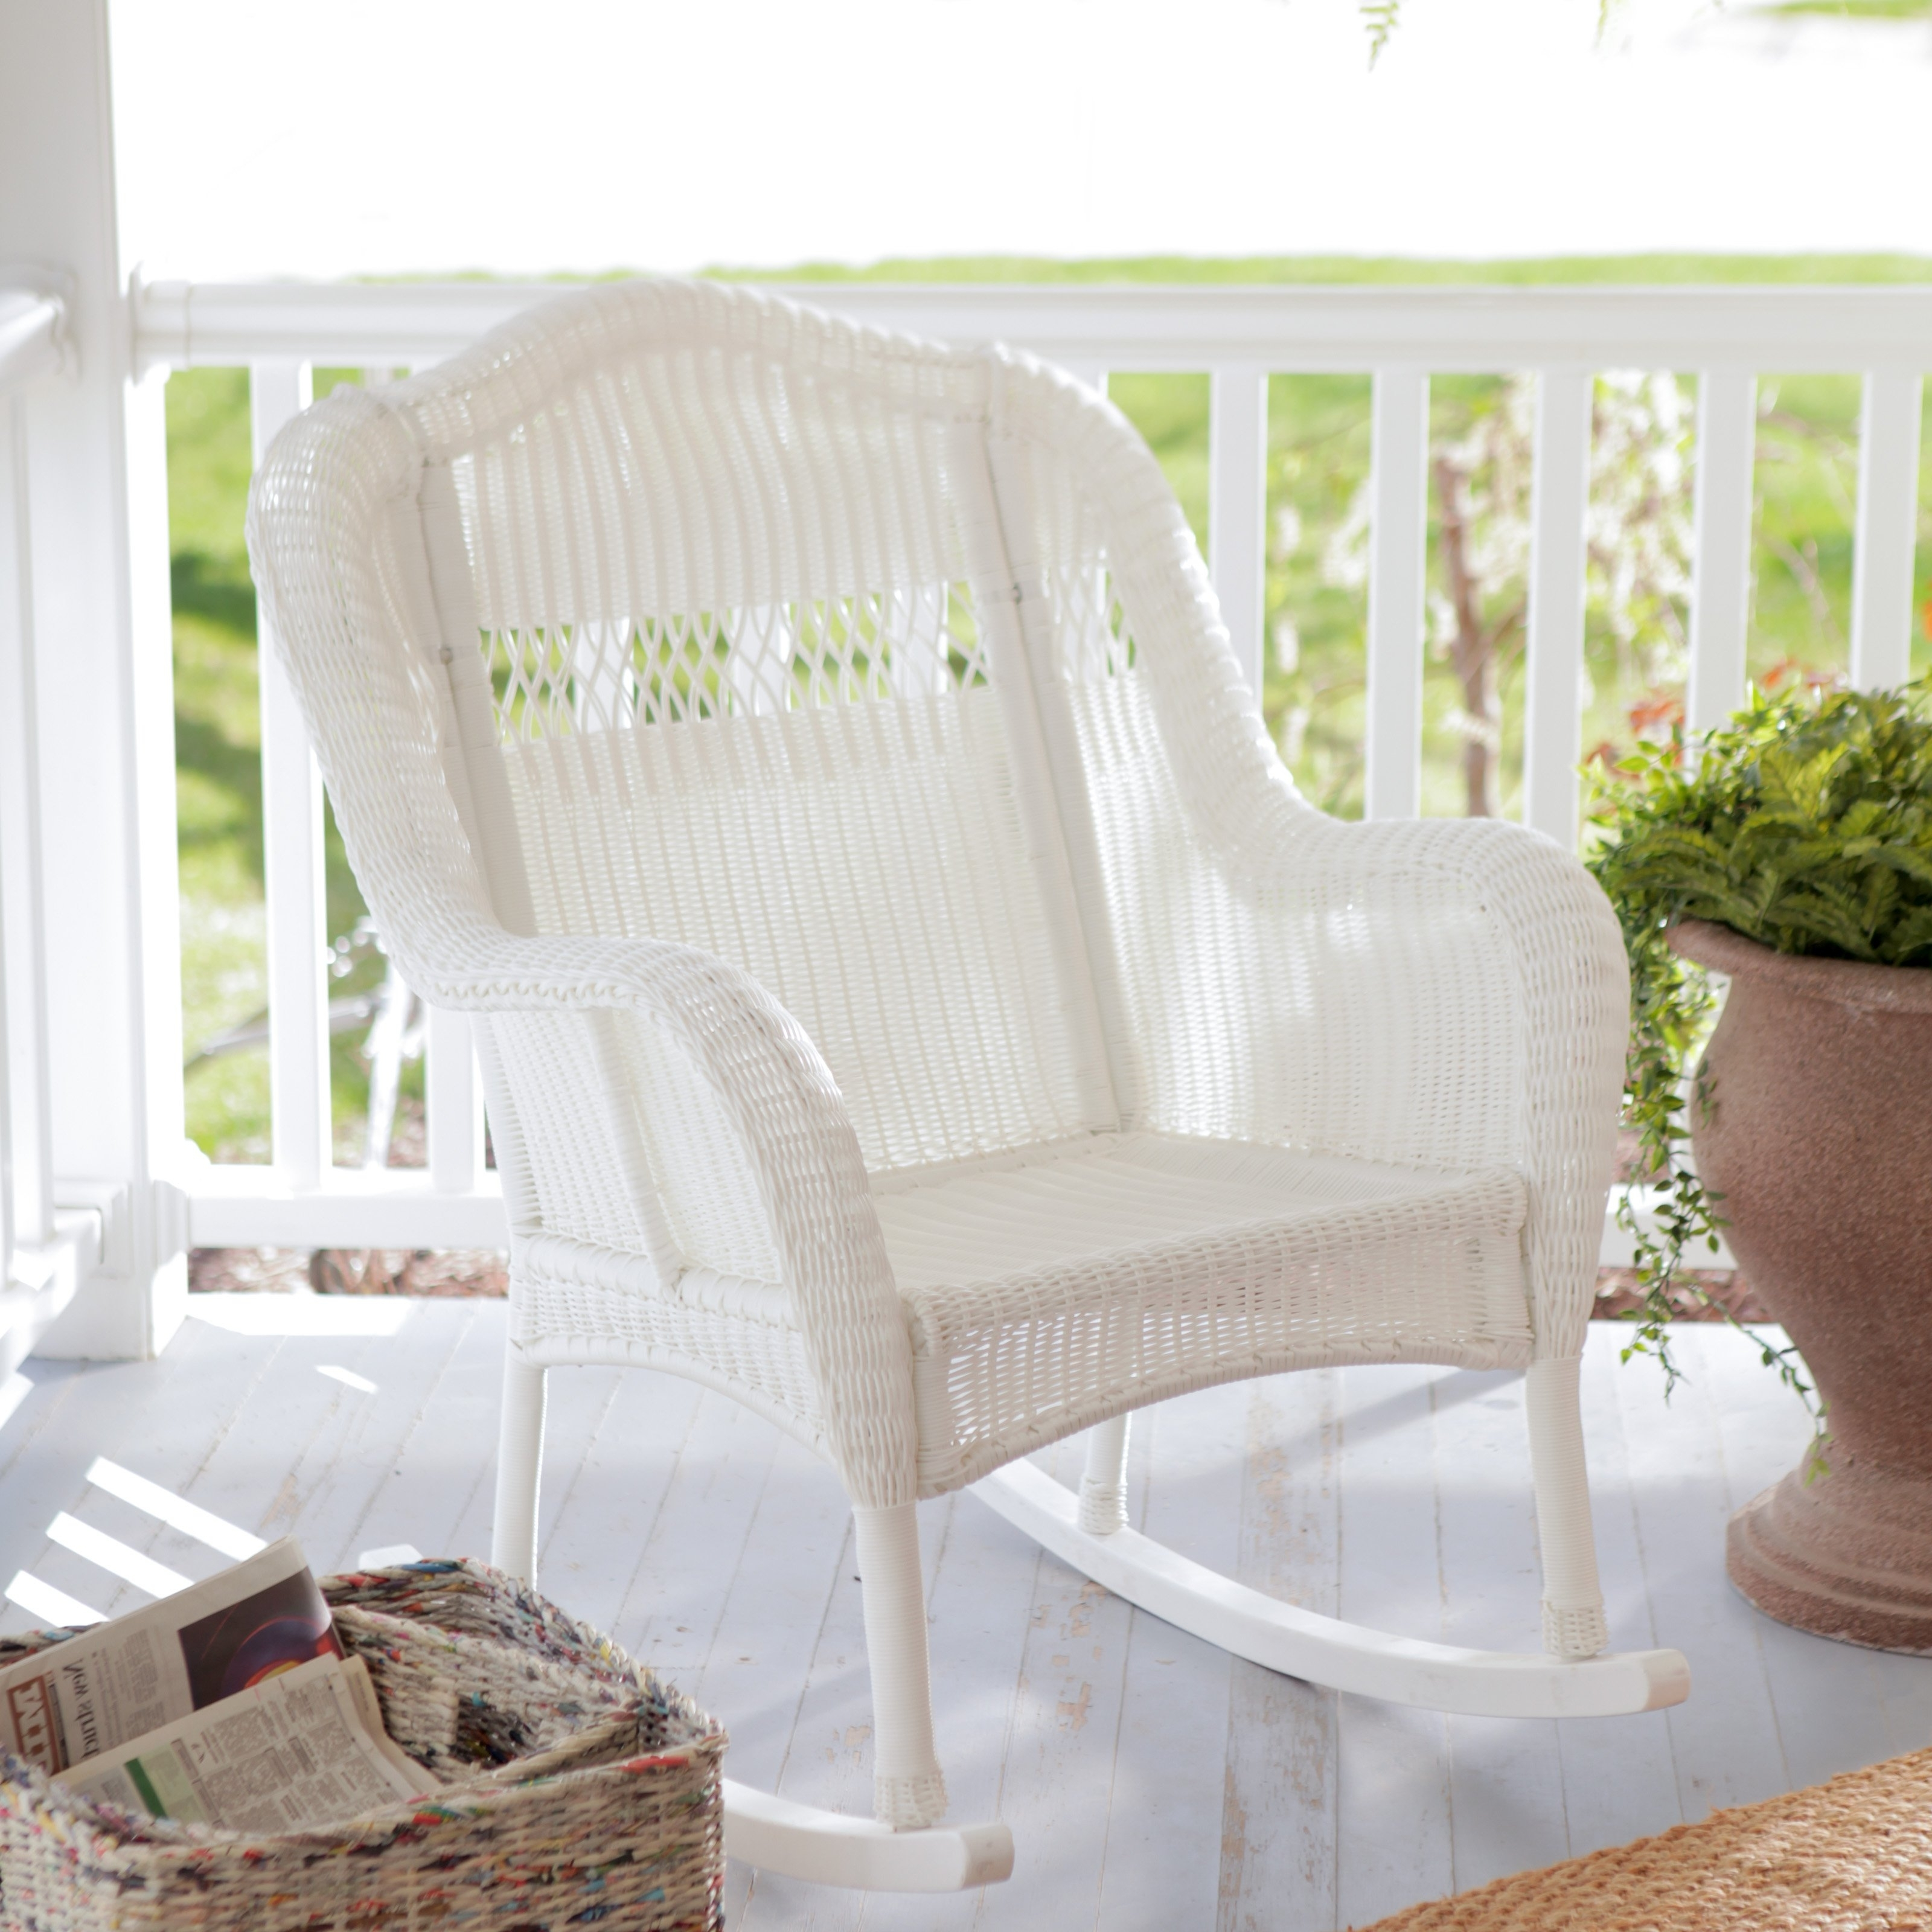 Marvelous White Wicker Rocking Chair On Stunning Barstools And With Regard To 2017 White Wicker Rocking Chairs (View 14 of 15)